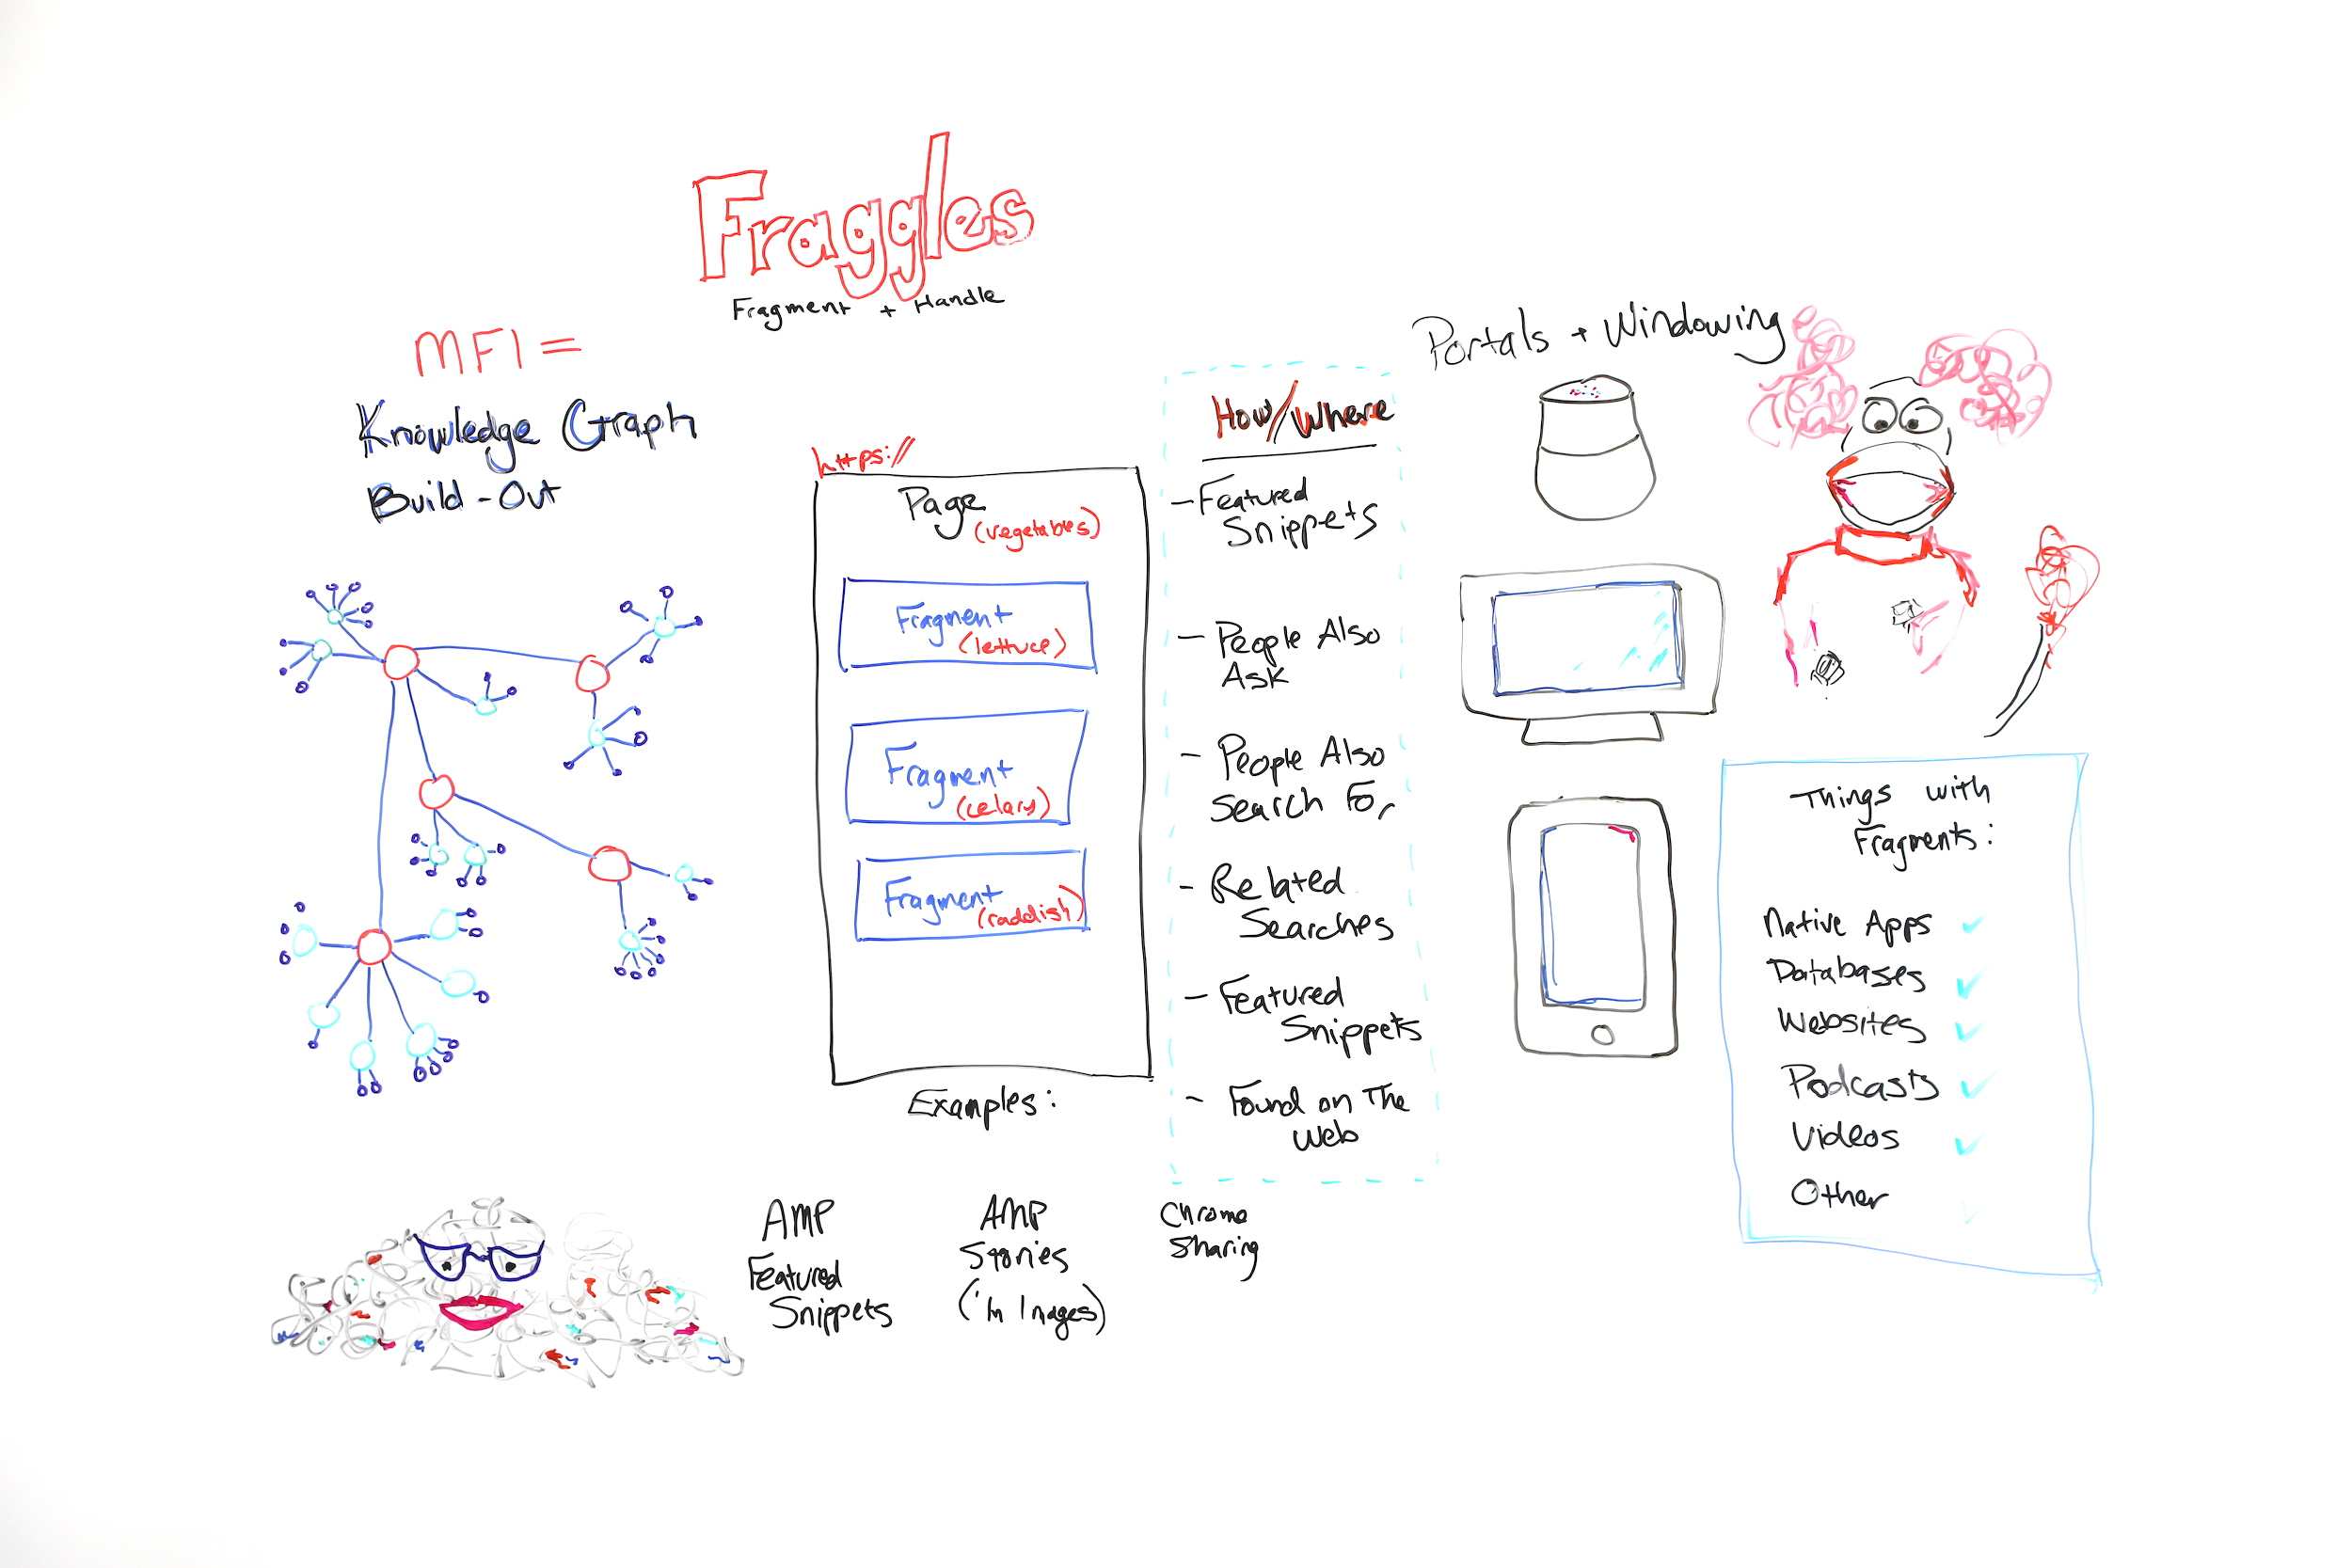 All About Fraggles (Fragment + Handle) – Whiteboard Friday